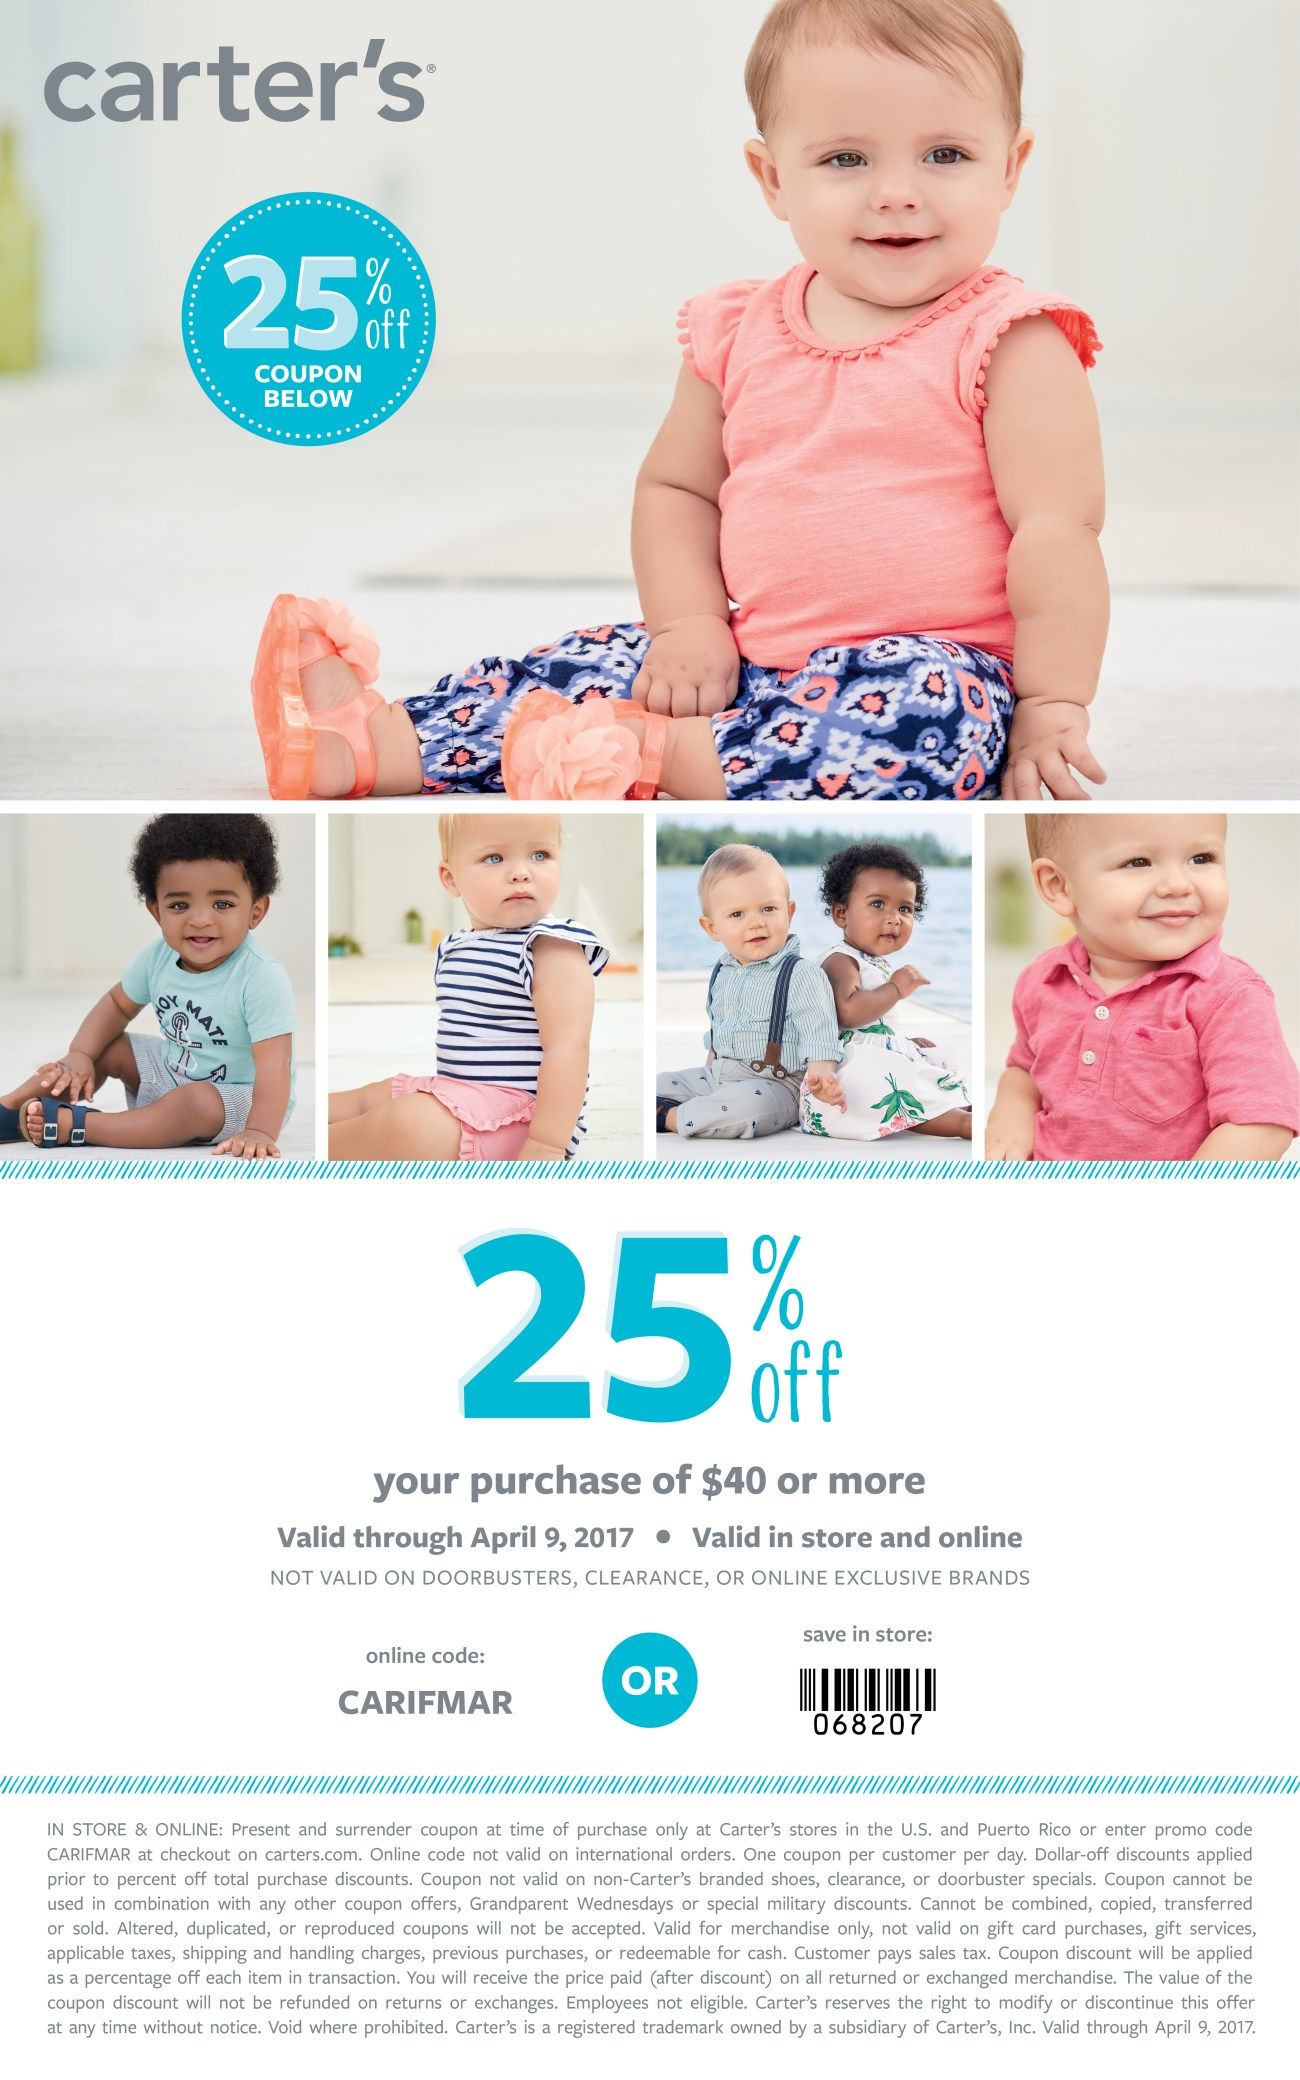 Carter's 25% off coupon